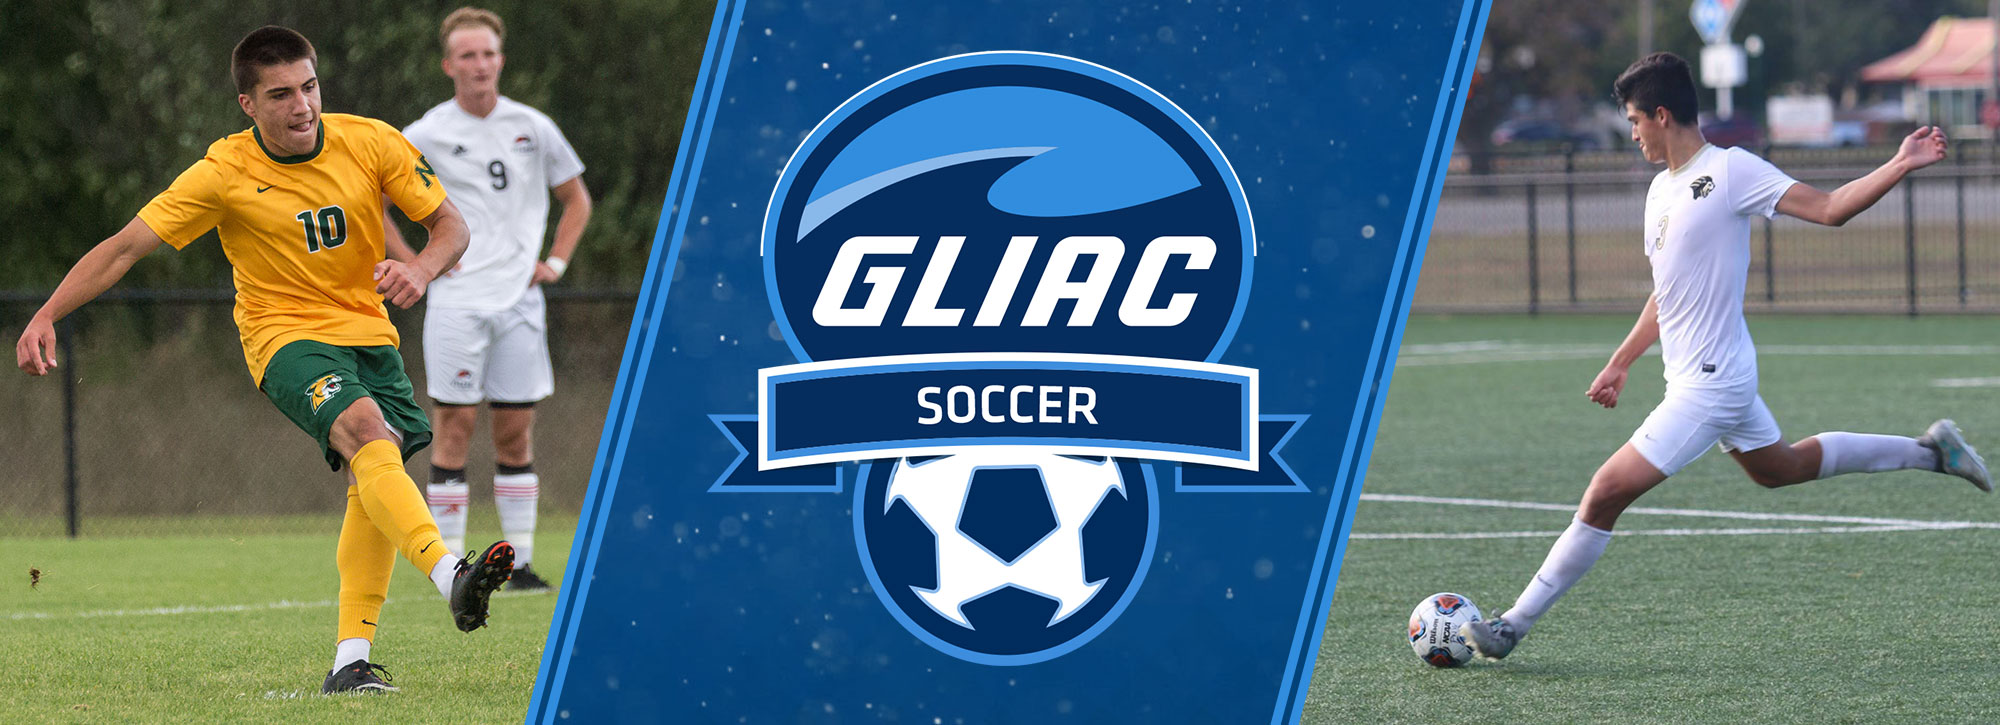 Northern Michigan's Popp, Purdue Northwest's Ugarte Garner GLIAC Men's Soccer Weekly Honors